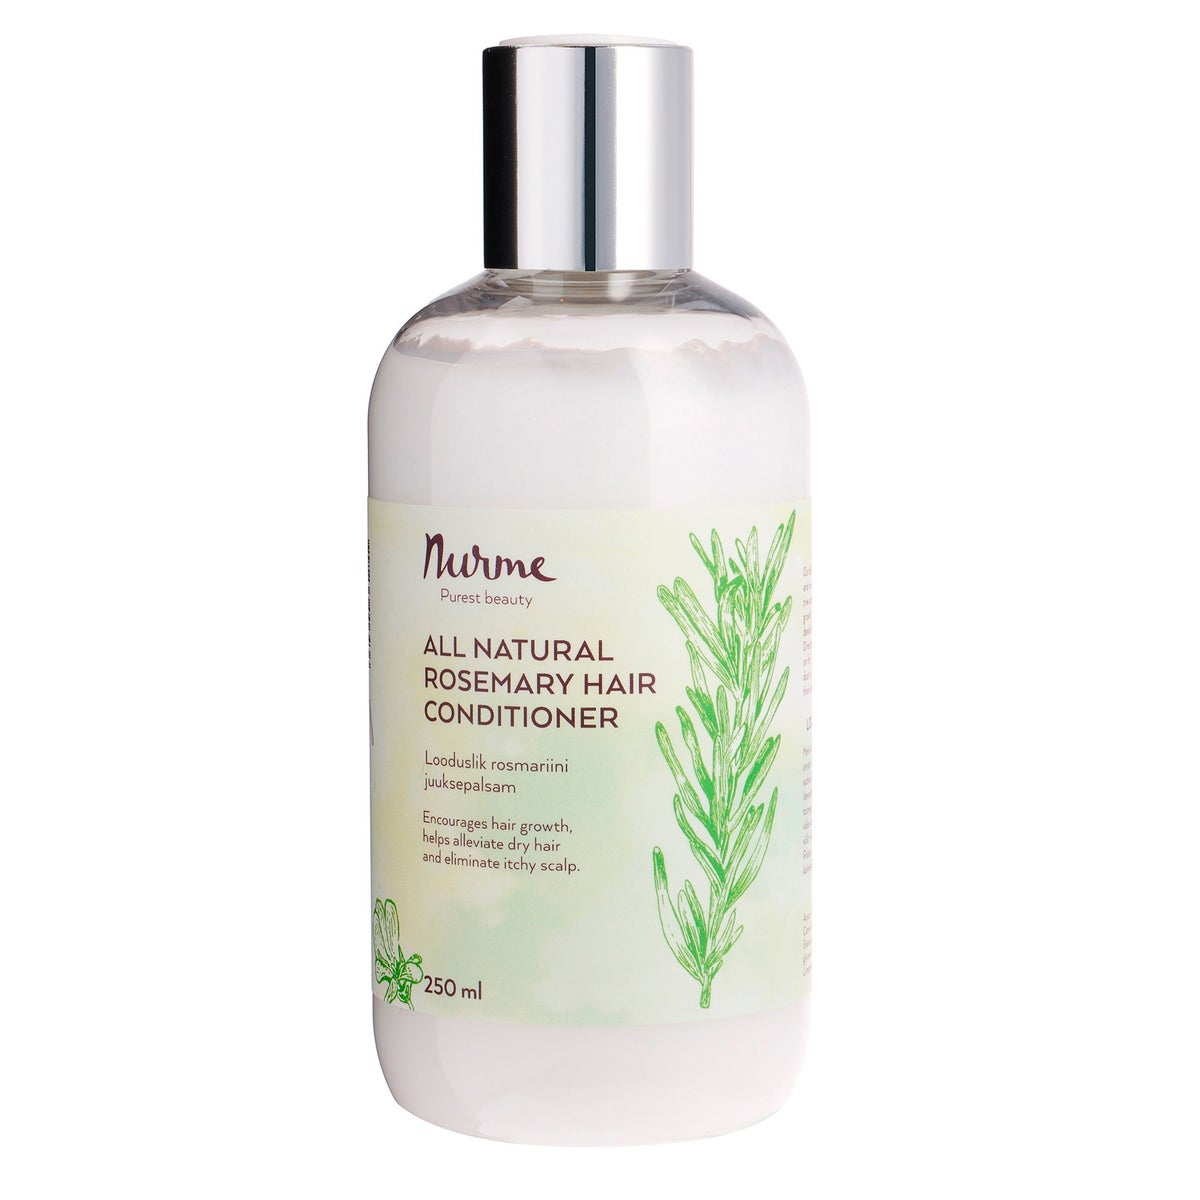 Nurme All Natural Rosemary Hair Conditioner